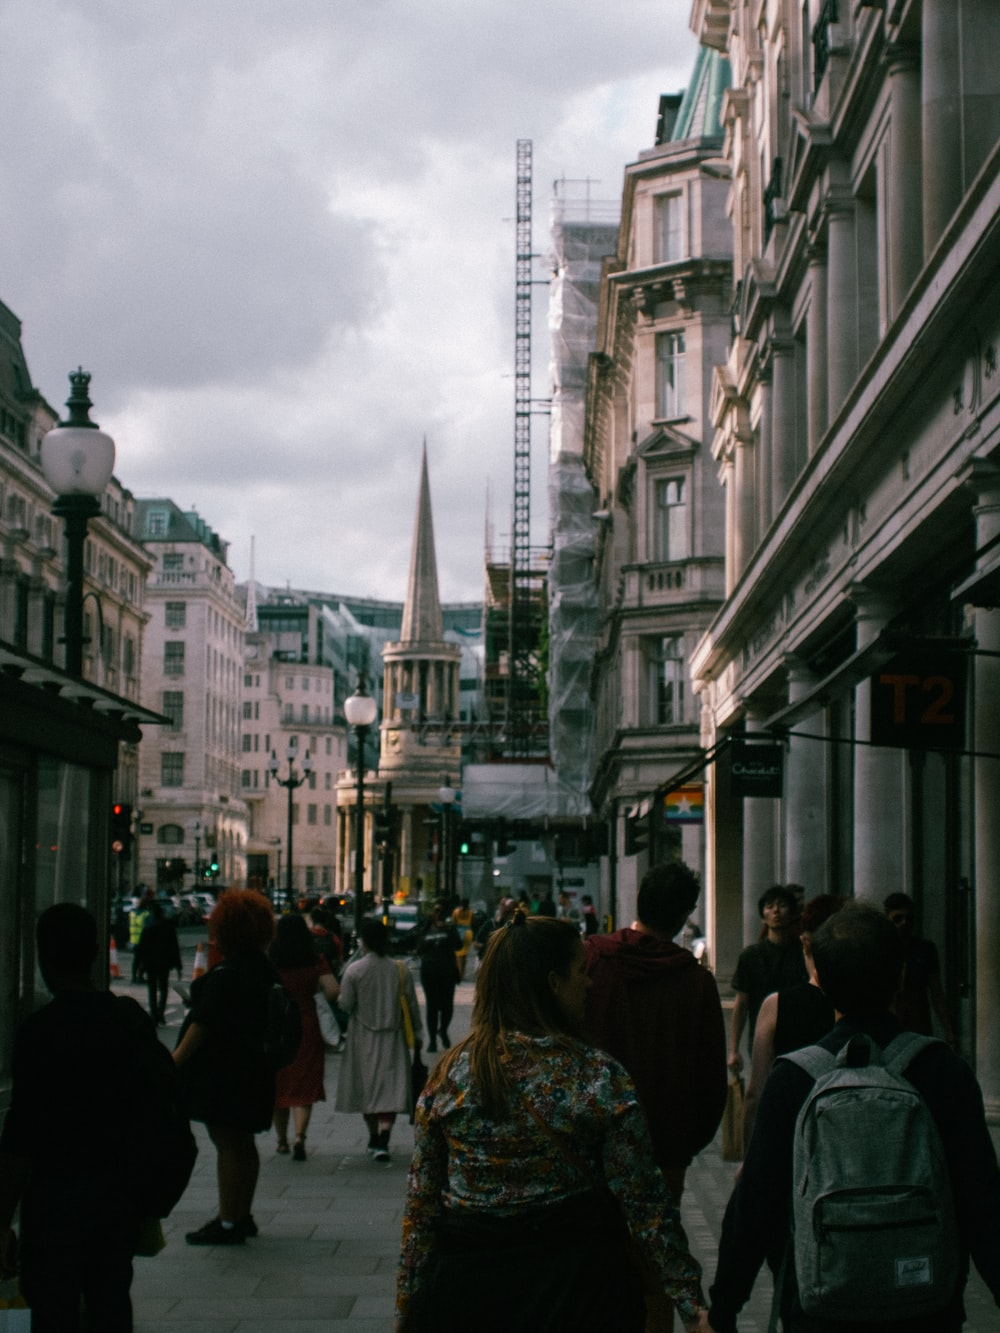 people surrounded by buildings